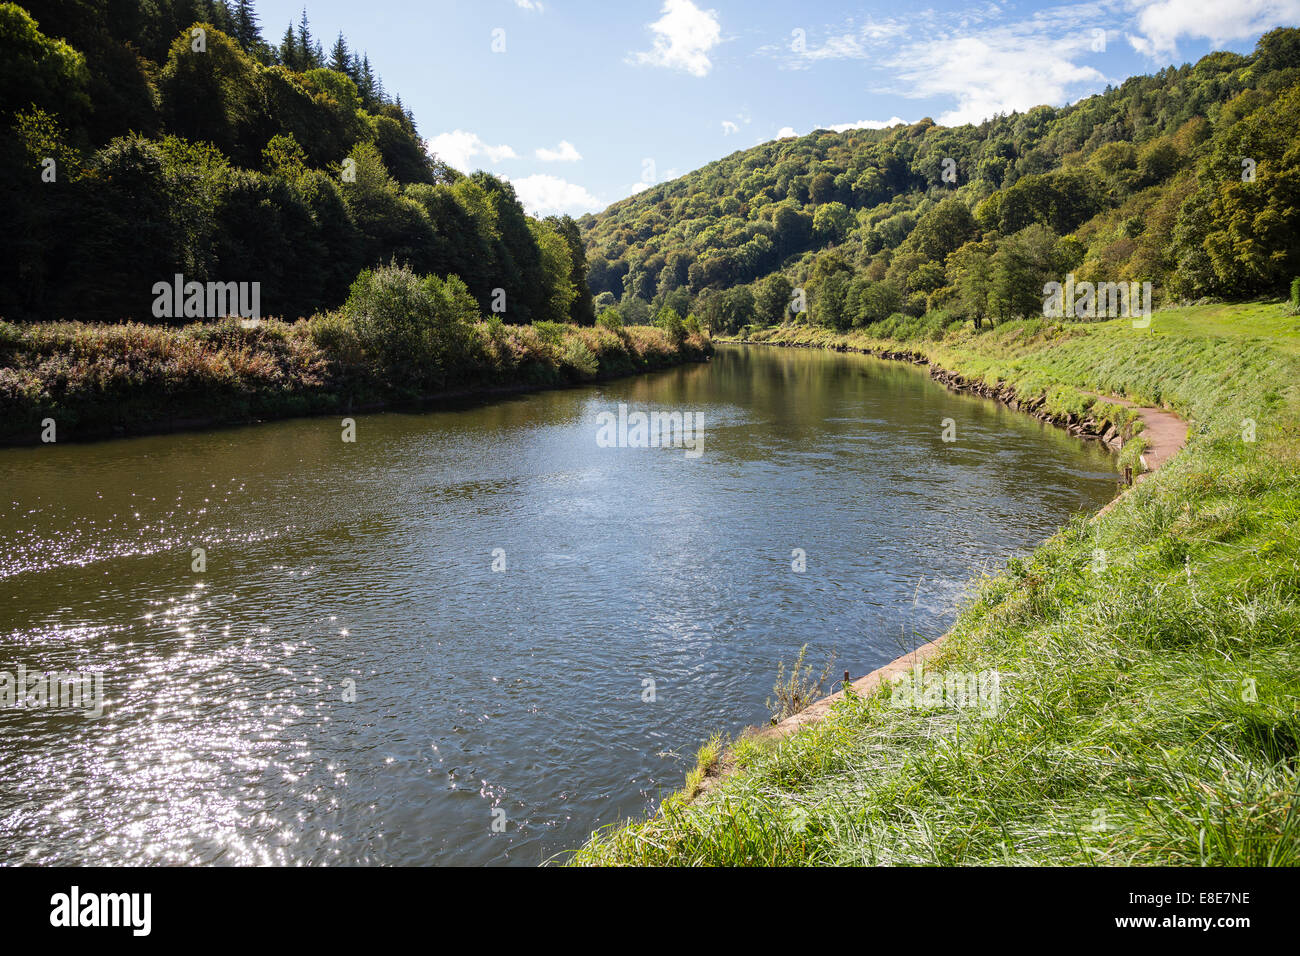 Wooded stretch of the river Wye near Monmouth Wales - Stock Image